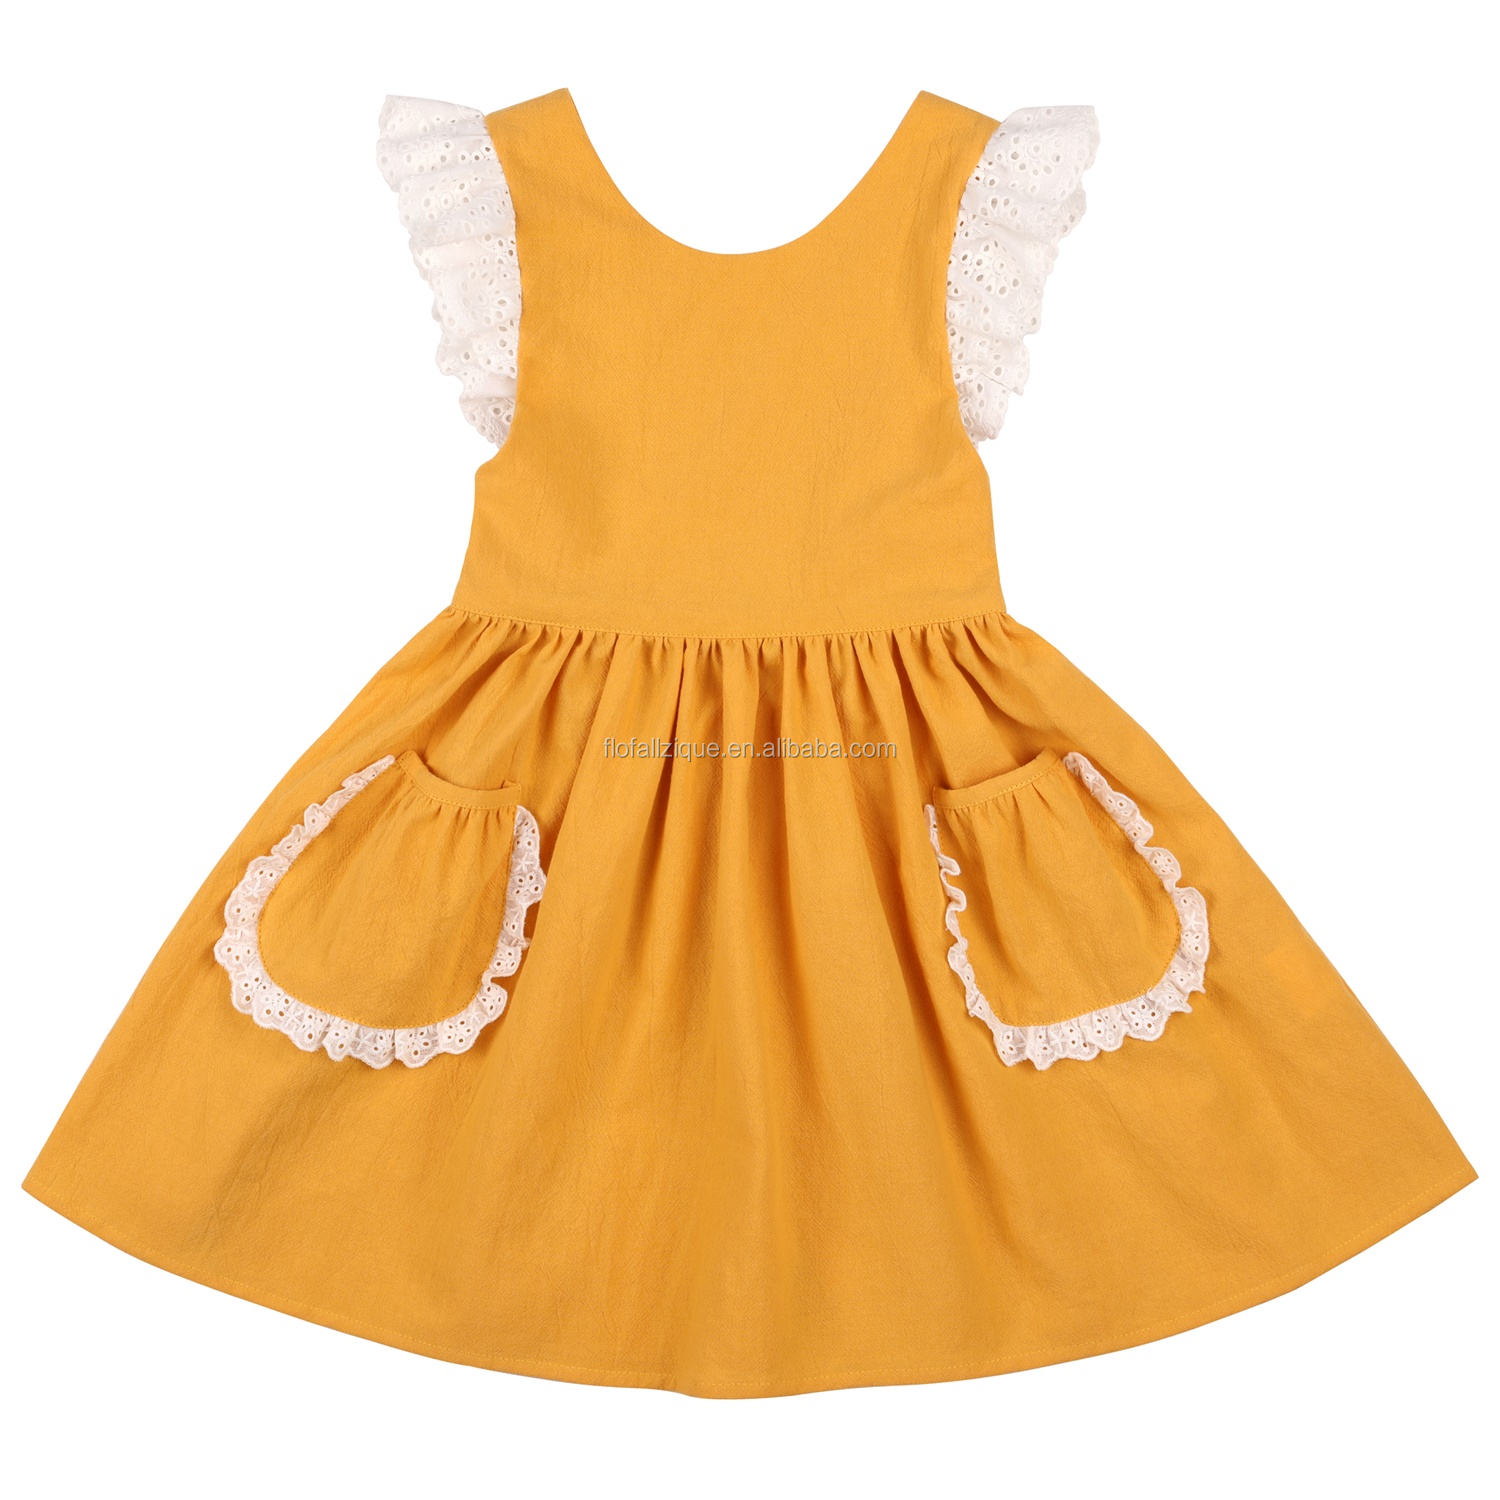 Rts Modern Dress Baby Gowns Holiday Fancy Yellowv Dress For Girls Mustard Dresses